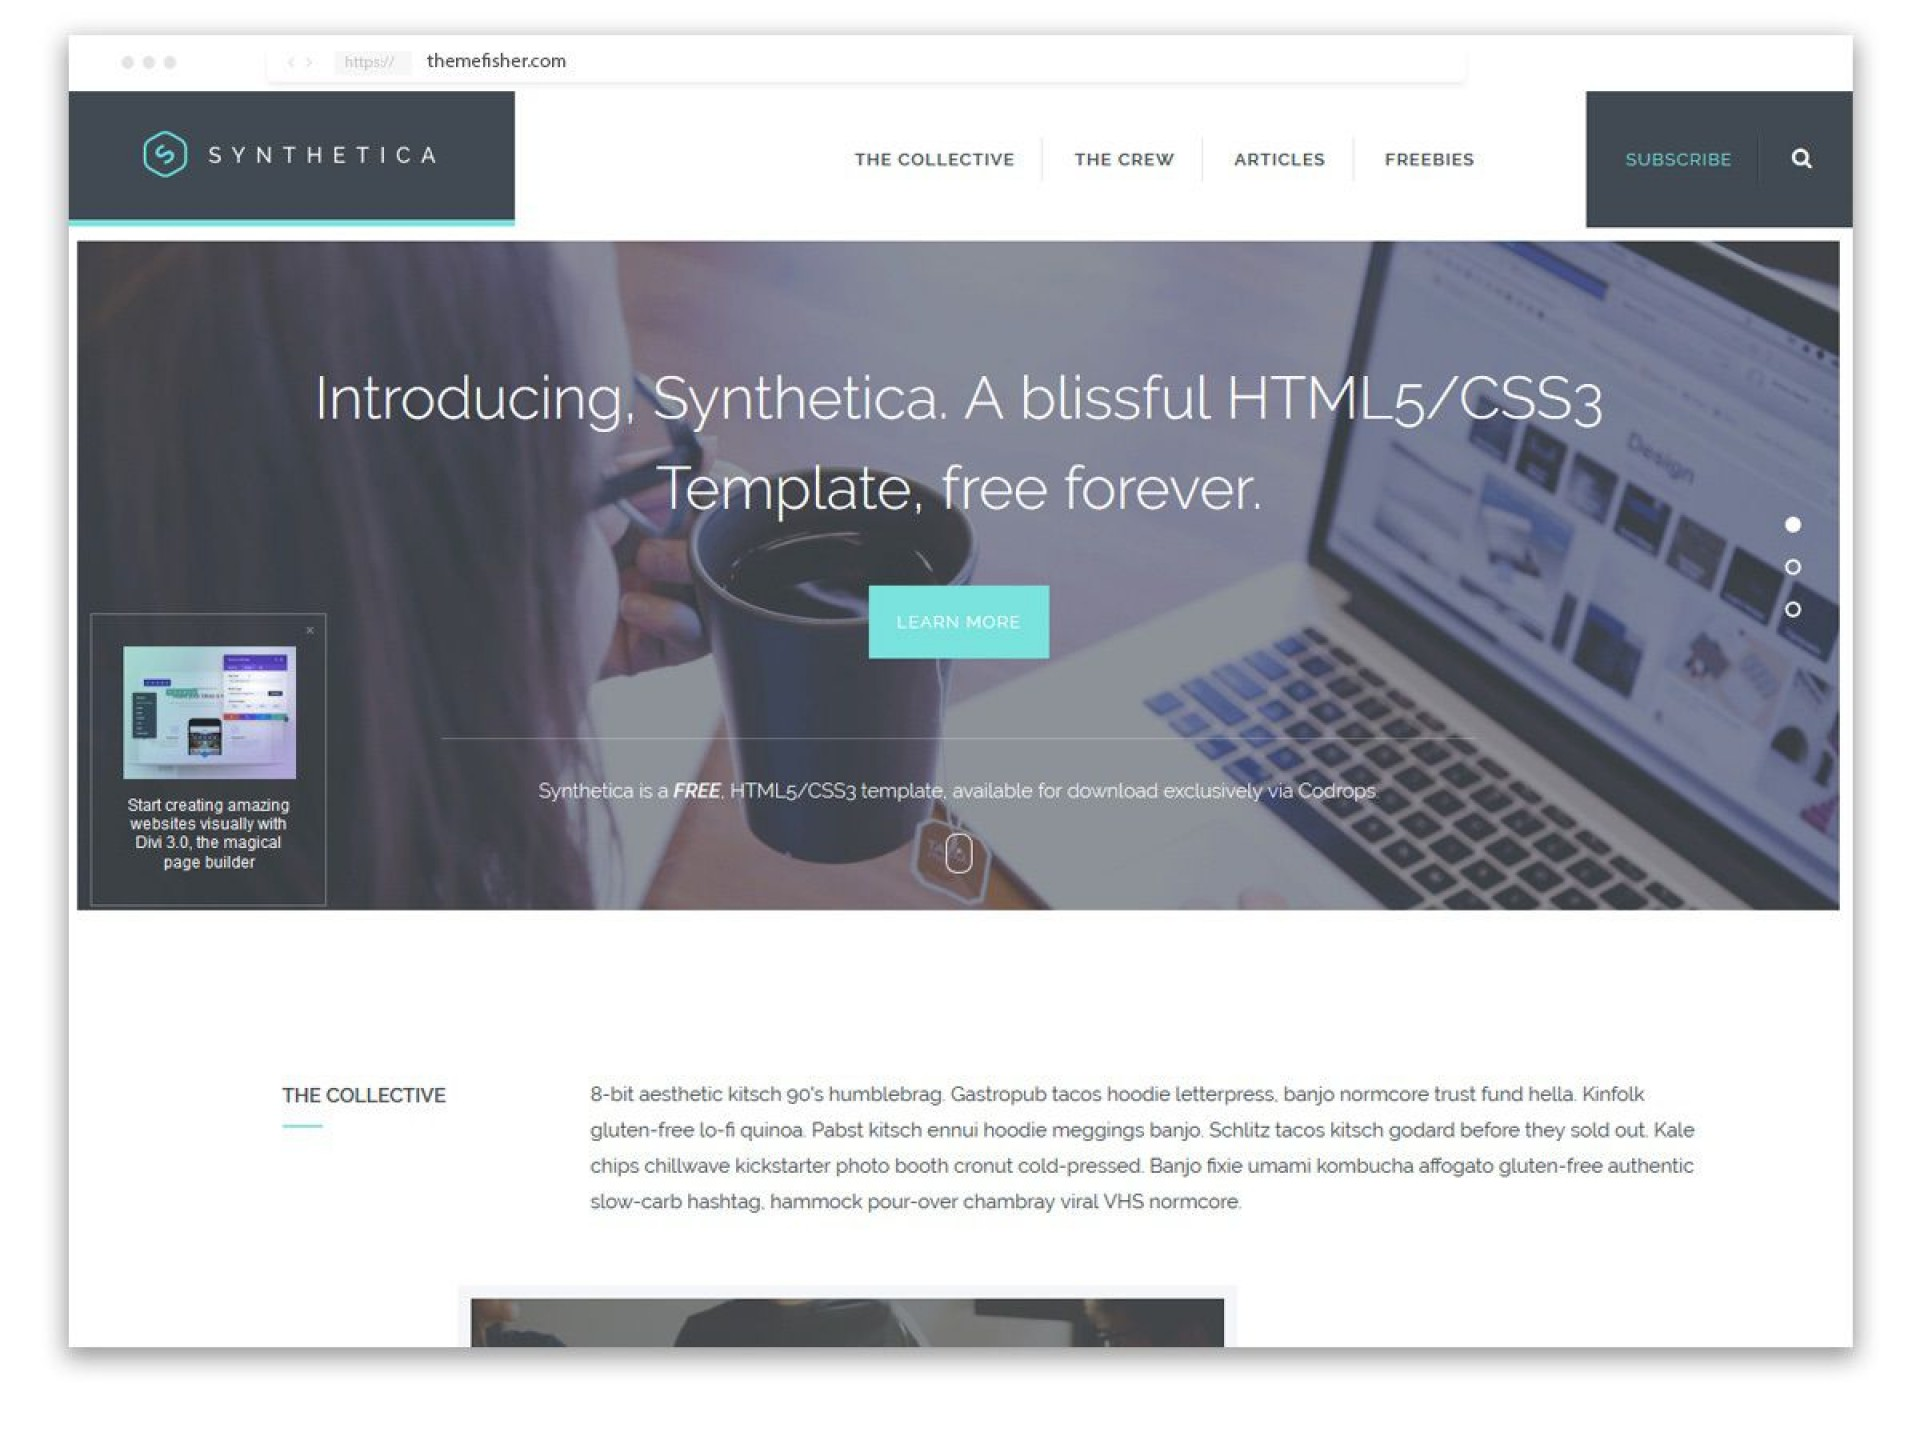 009 Unusual Web Page Design Template In Asp Net High Resolution  Asp.net1920